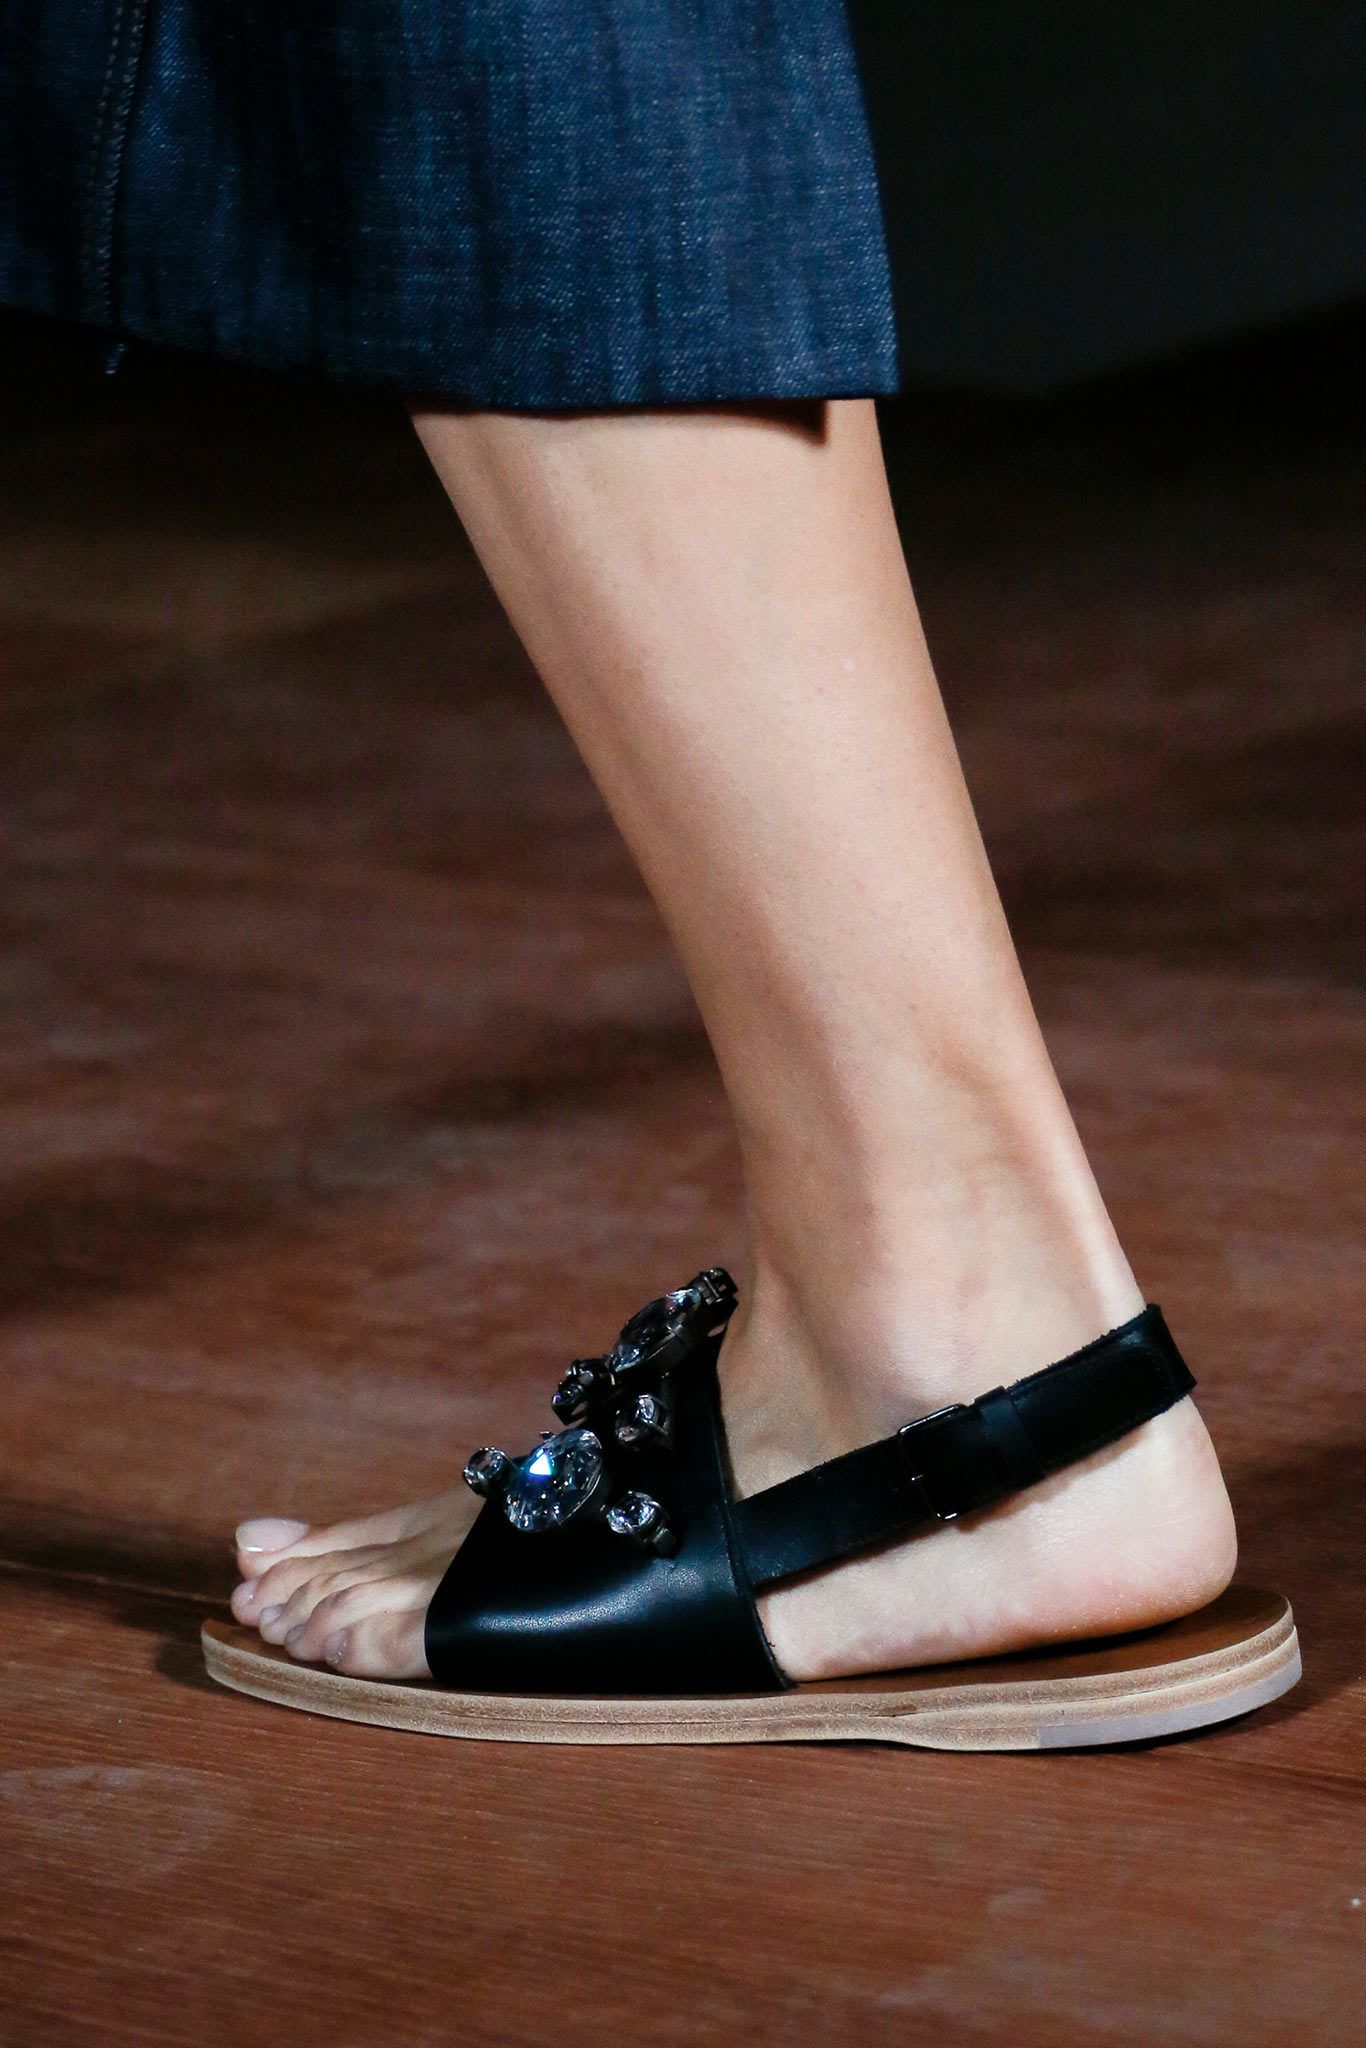 Sandals with Ankle Band Spring/summerMiu Miu ddlXo0gHH